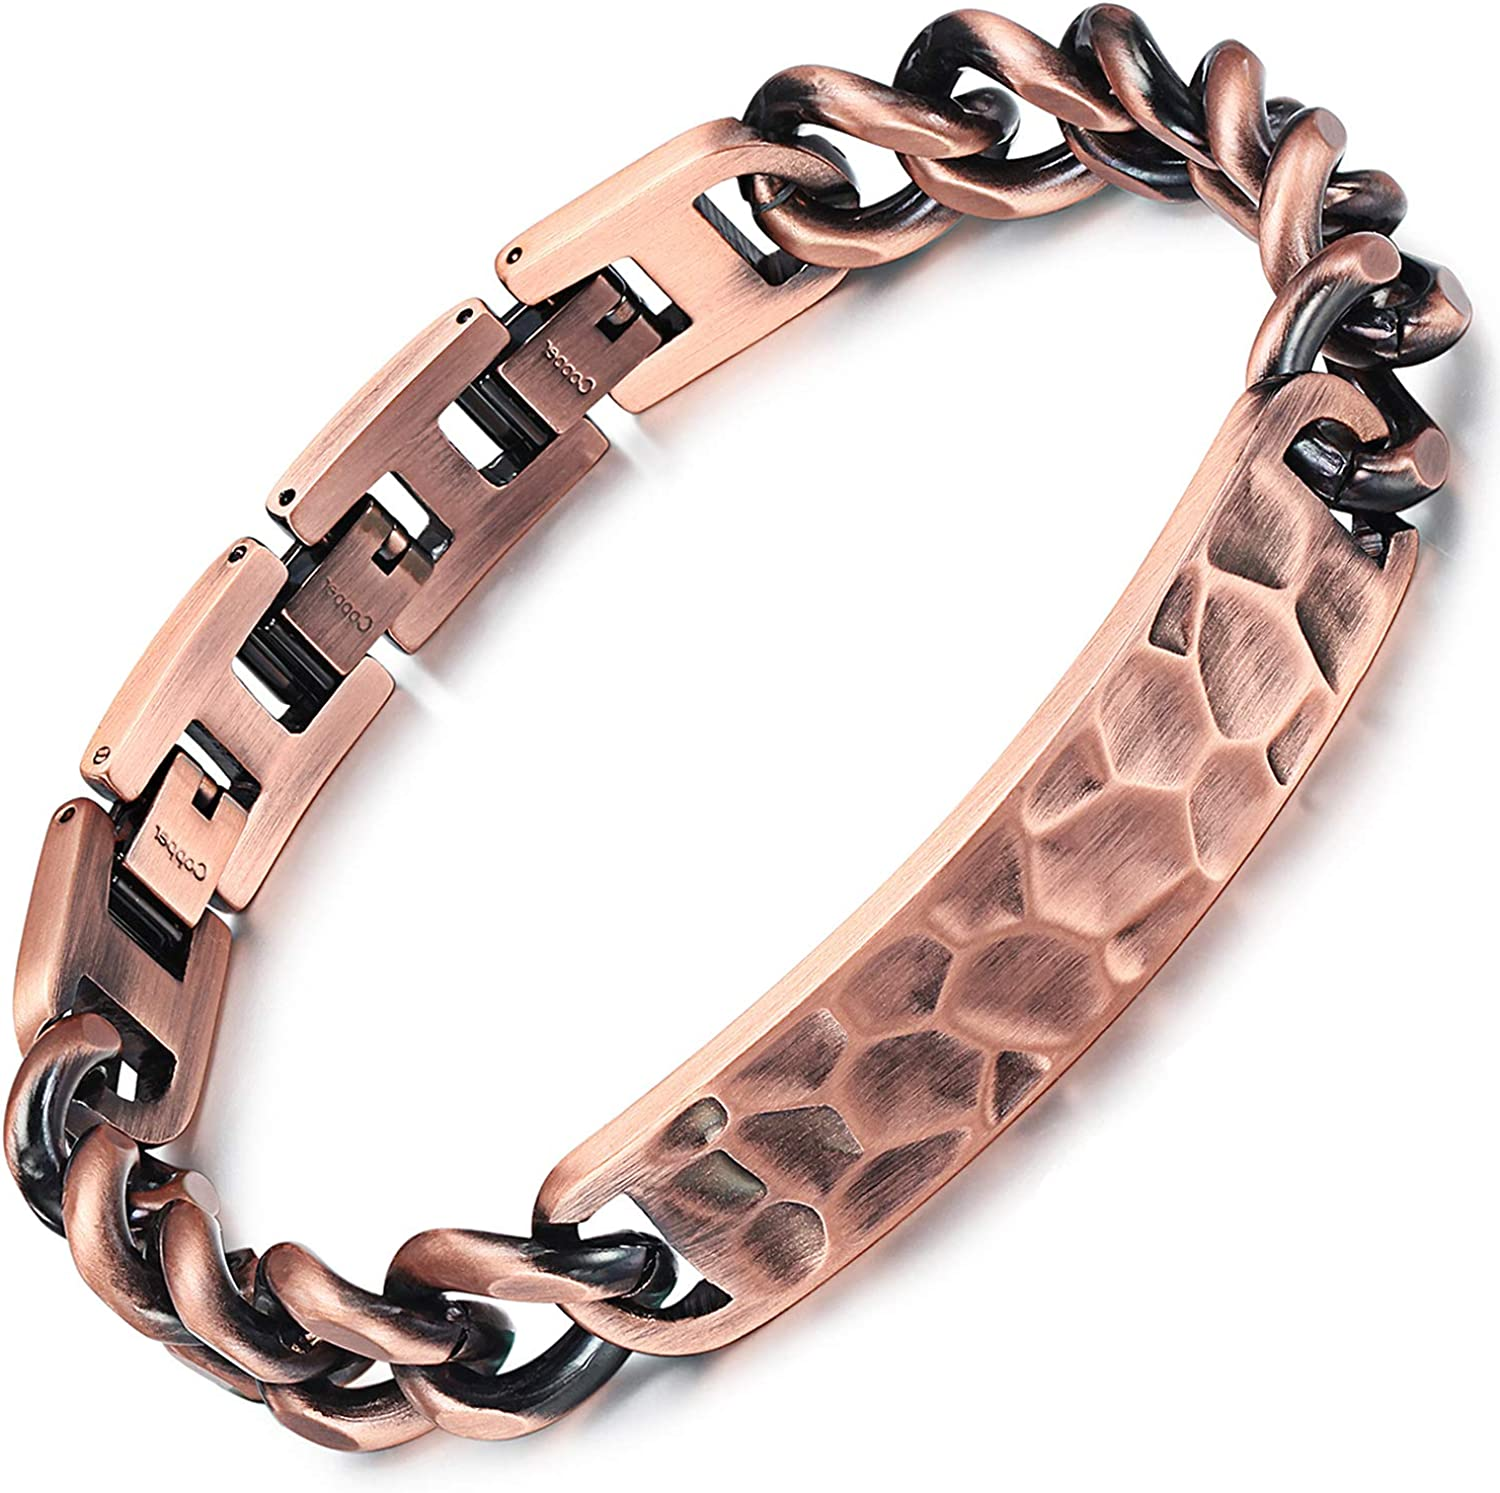 RainSo Mens Adjustable Double Row 3500 Gauss 99.95% Pure Copper Magnetic Therapy Bracelet Pain Relief